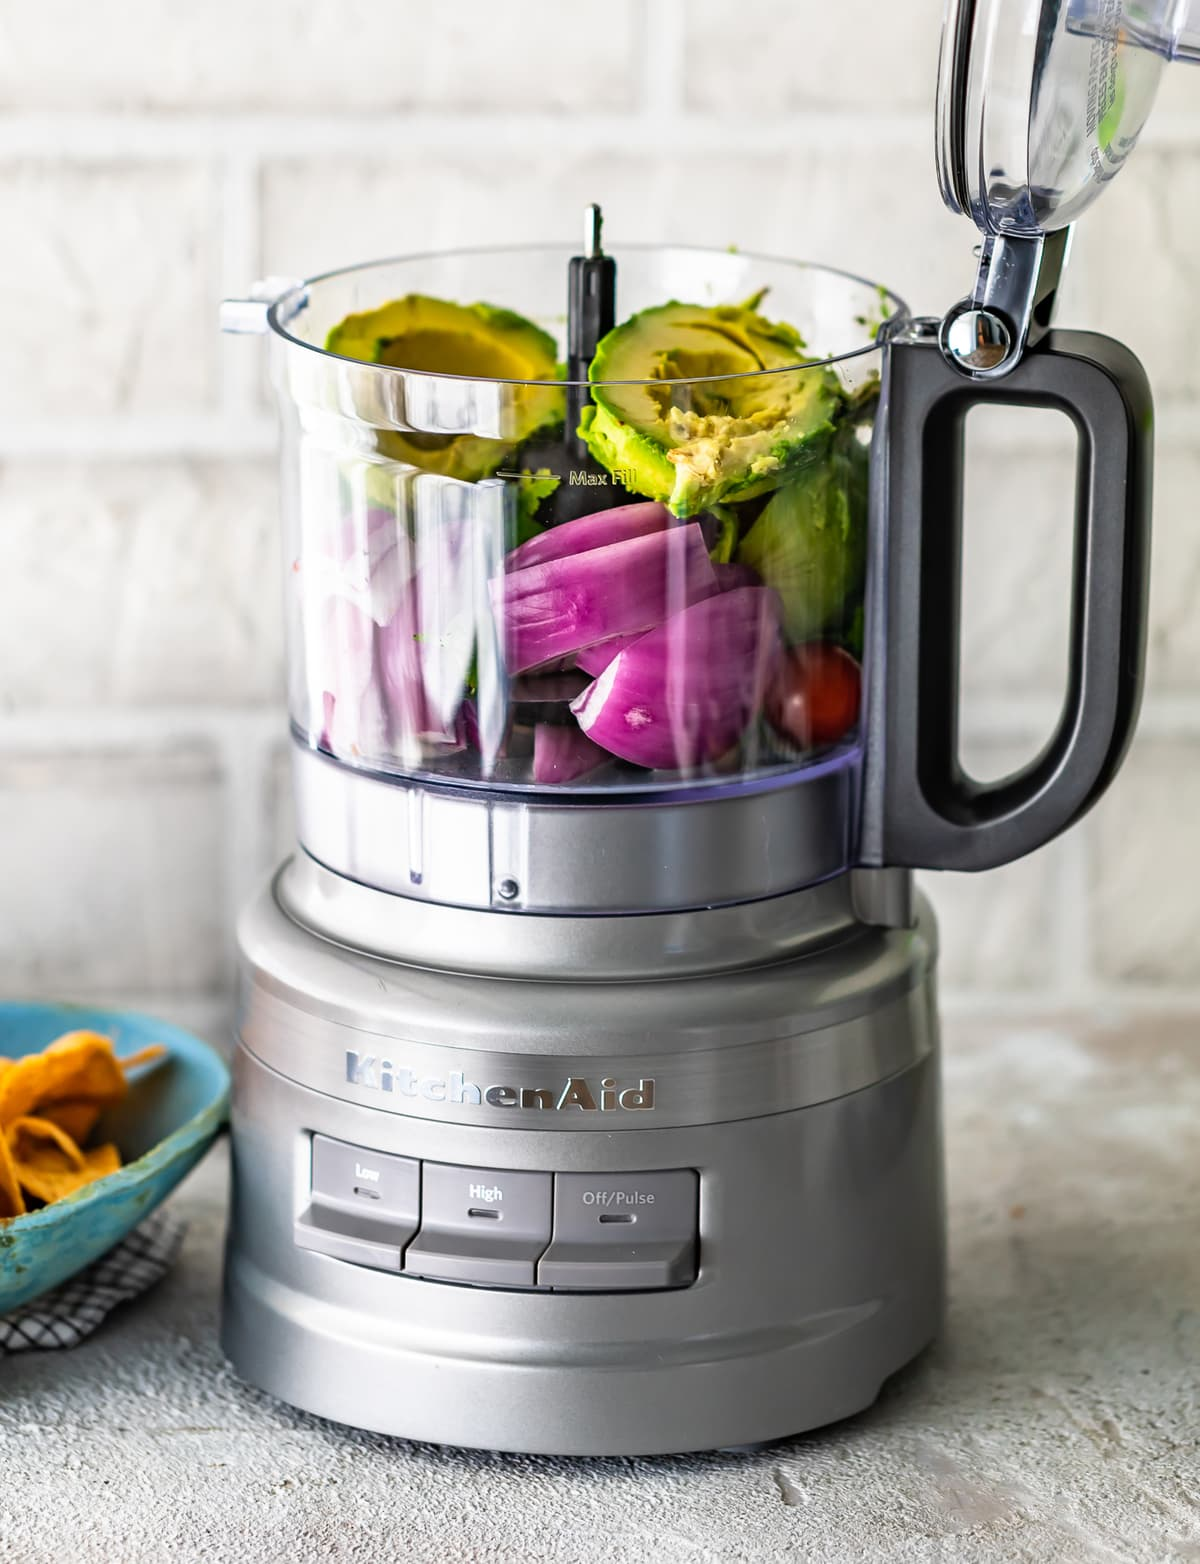 food processor filled with guacamole ingredients